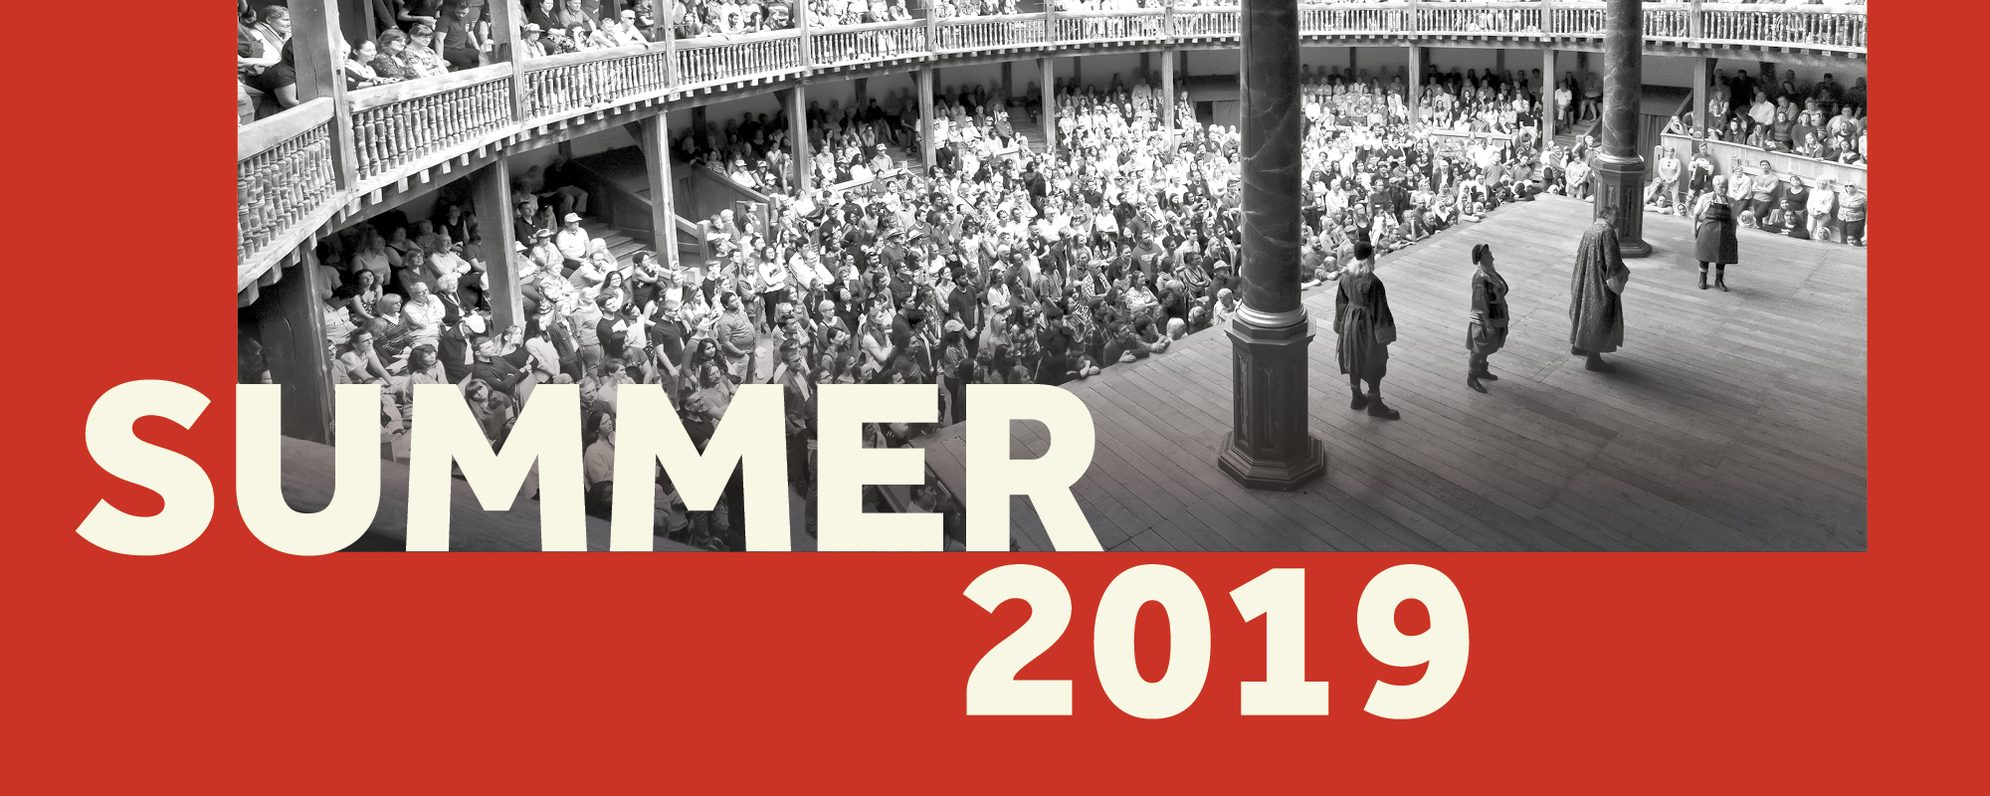 Summer cover-title-2019-event-masthead